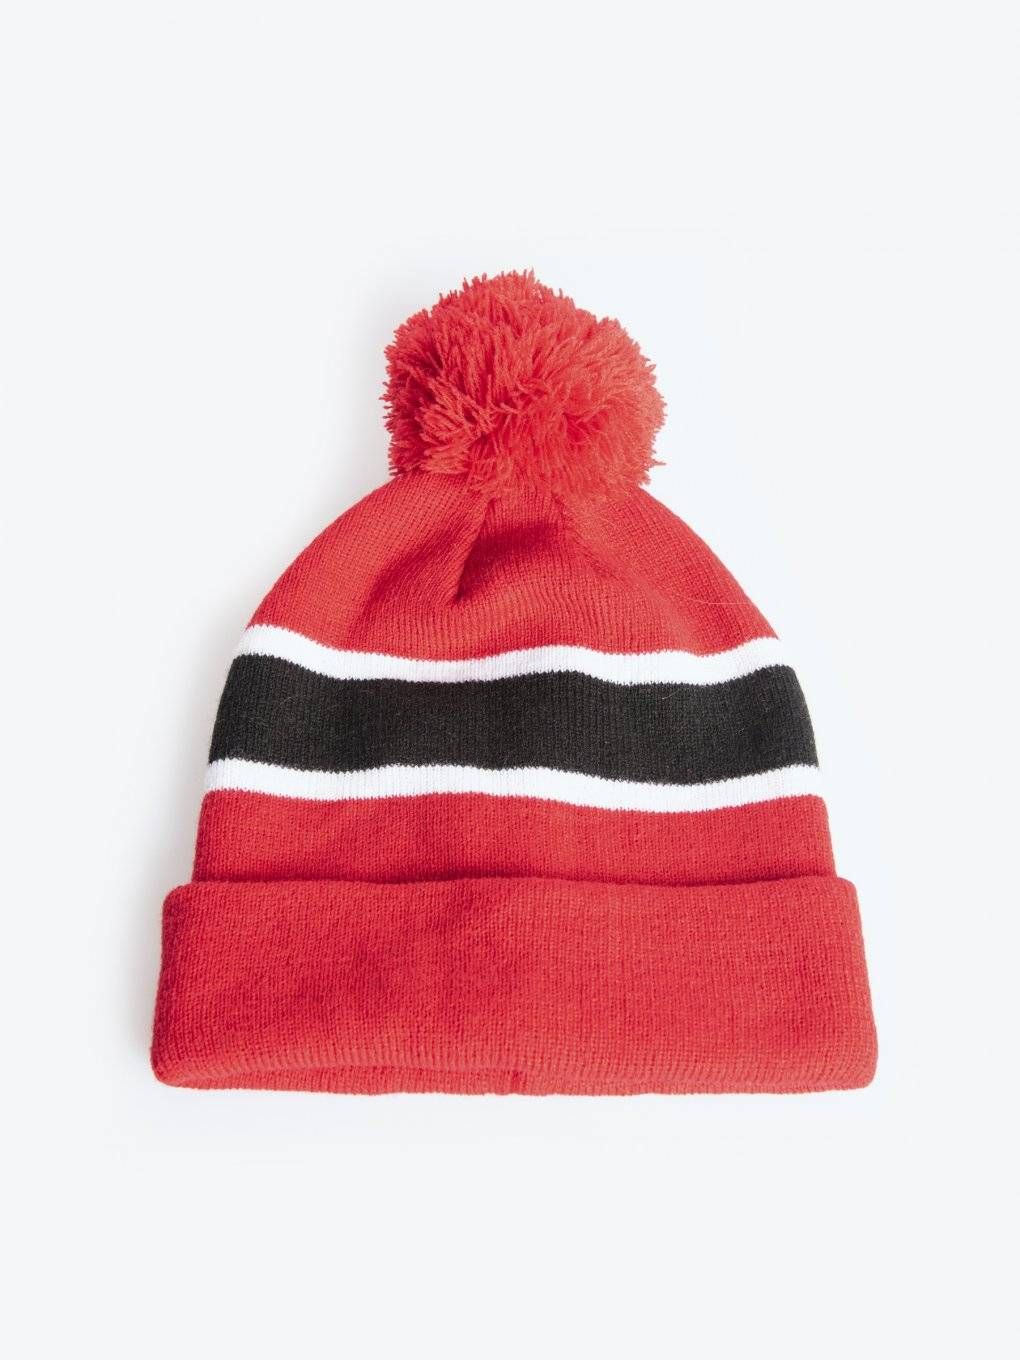 Pom pom beanie with stripes